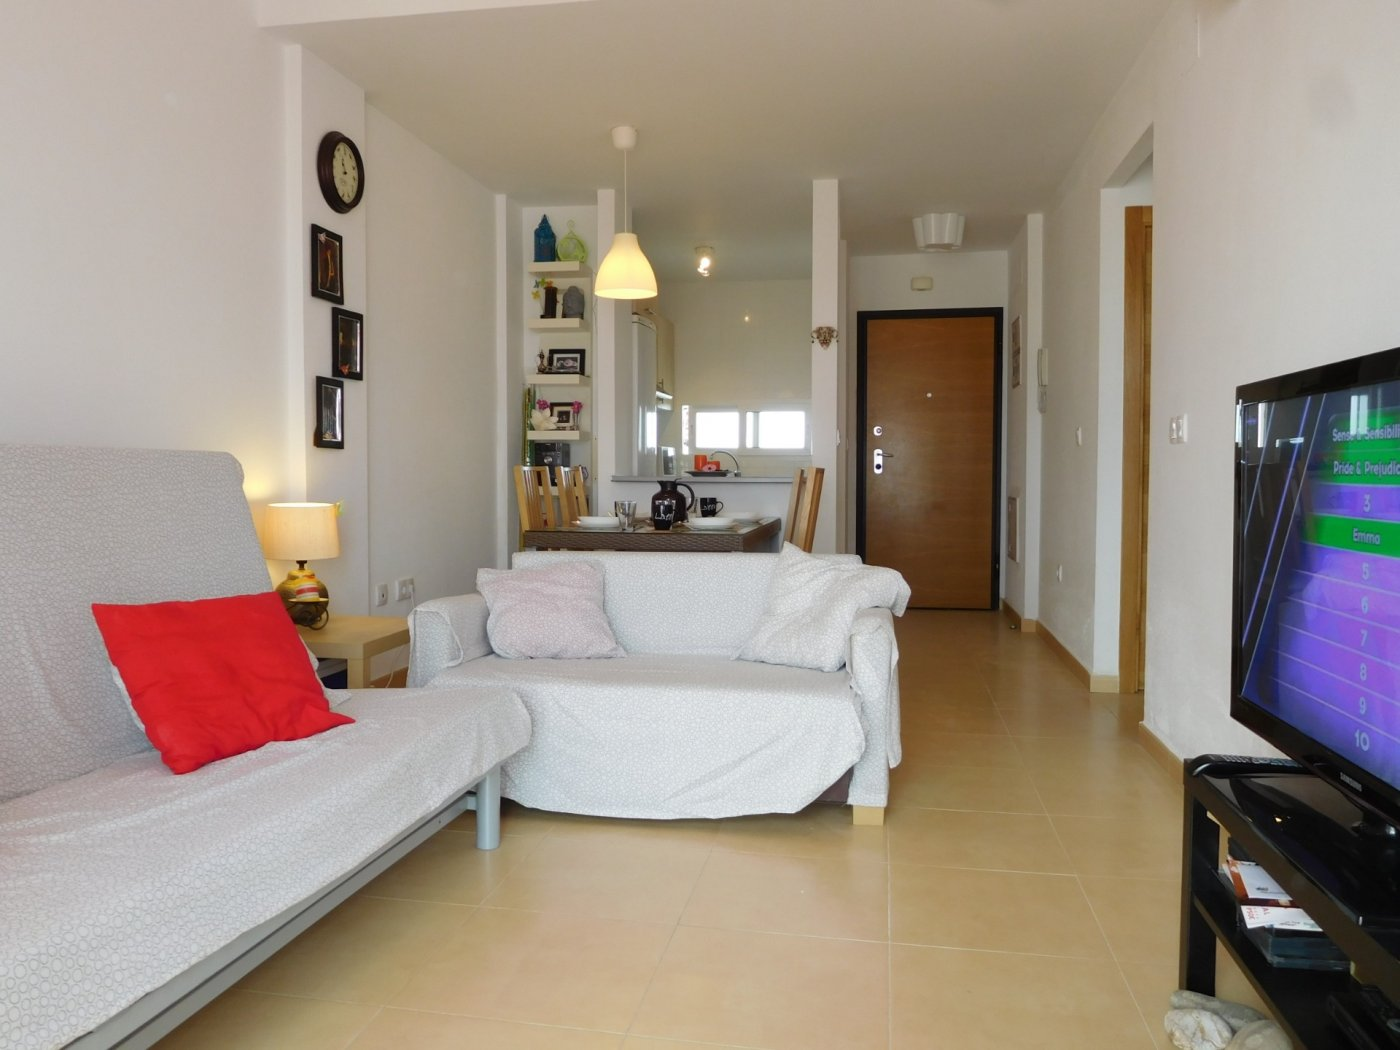 Gallery Image 13 of Apartment For rent in Condado De Alhama, Alhama De Murcia With Pool